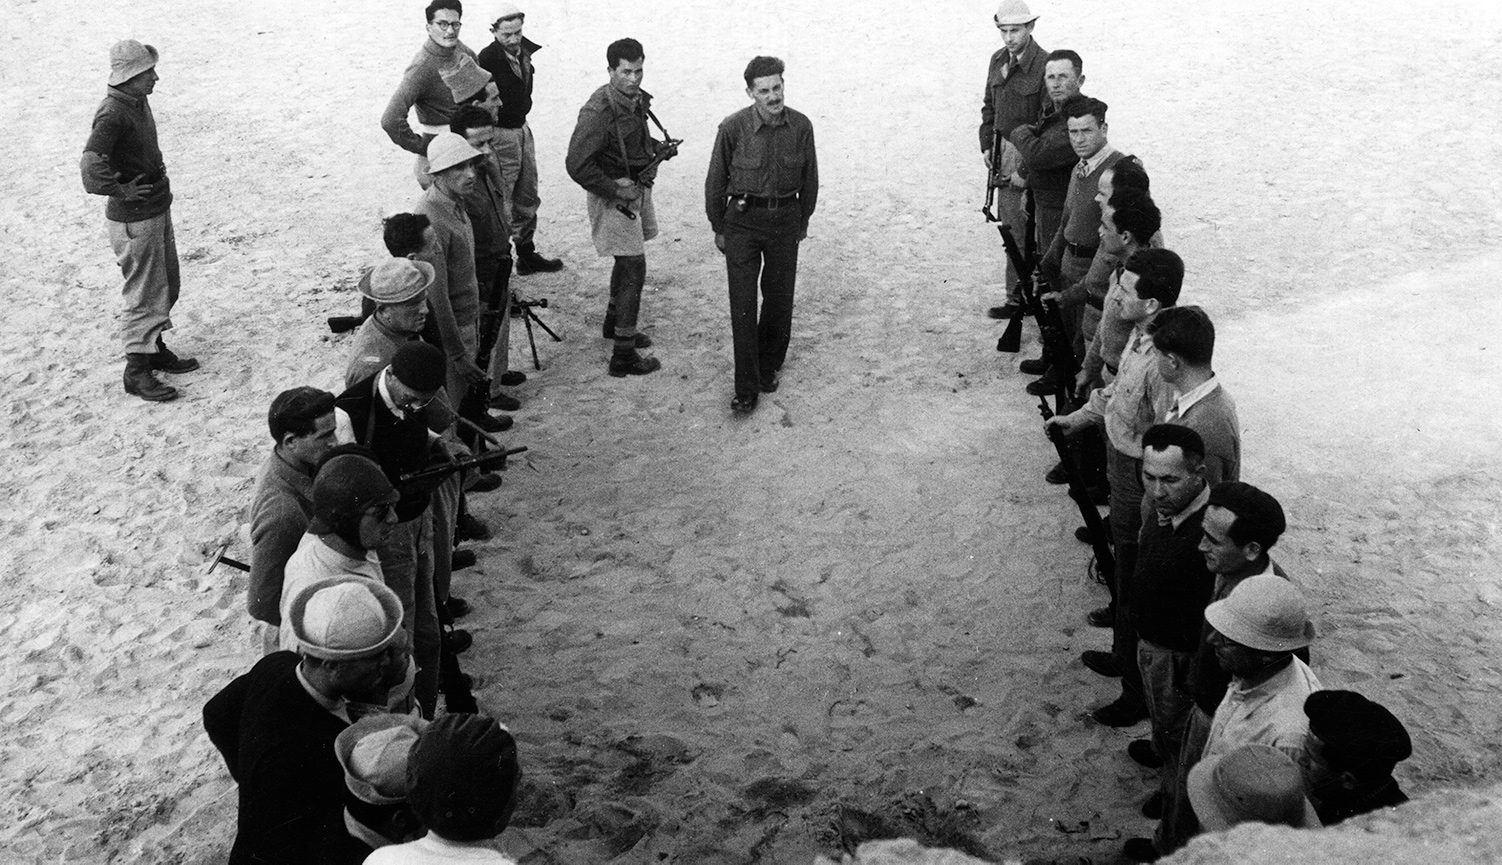 Haganah fighters training at Camp Yona, Tel Aviv, in the 1940s. Mondadori via Getty Images.